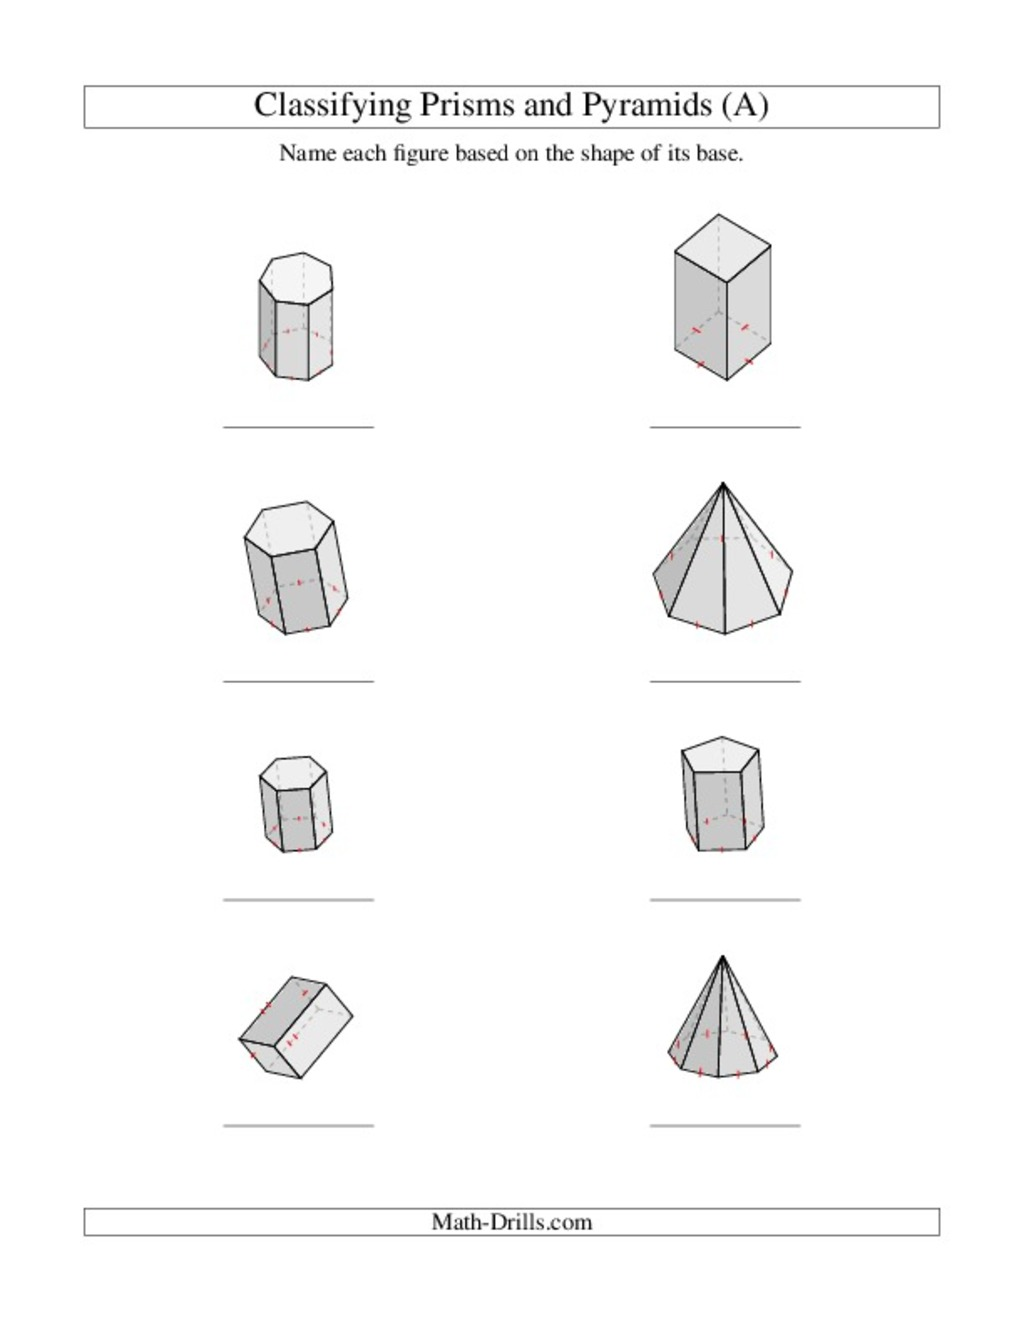 3d Shapes Lesson Plans \u0026 Worksheets Reviewed by Teachers [ 1325 x 1024 Pixel ]